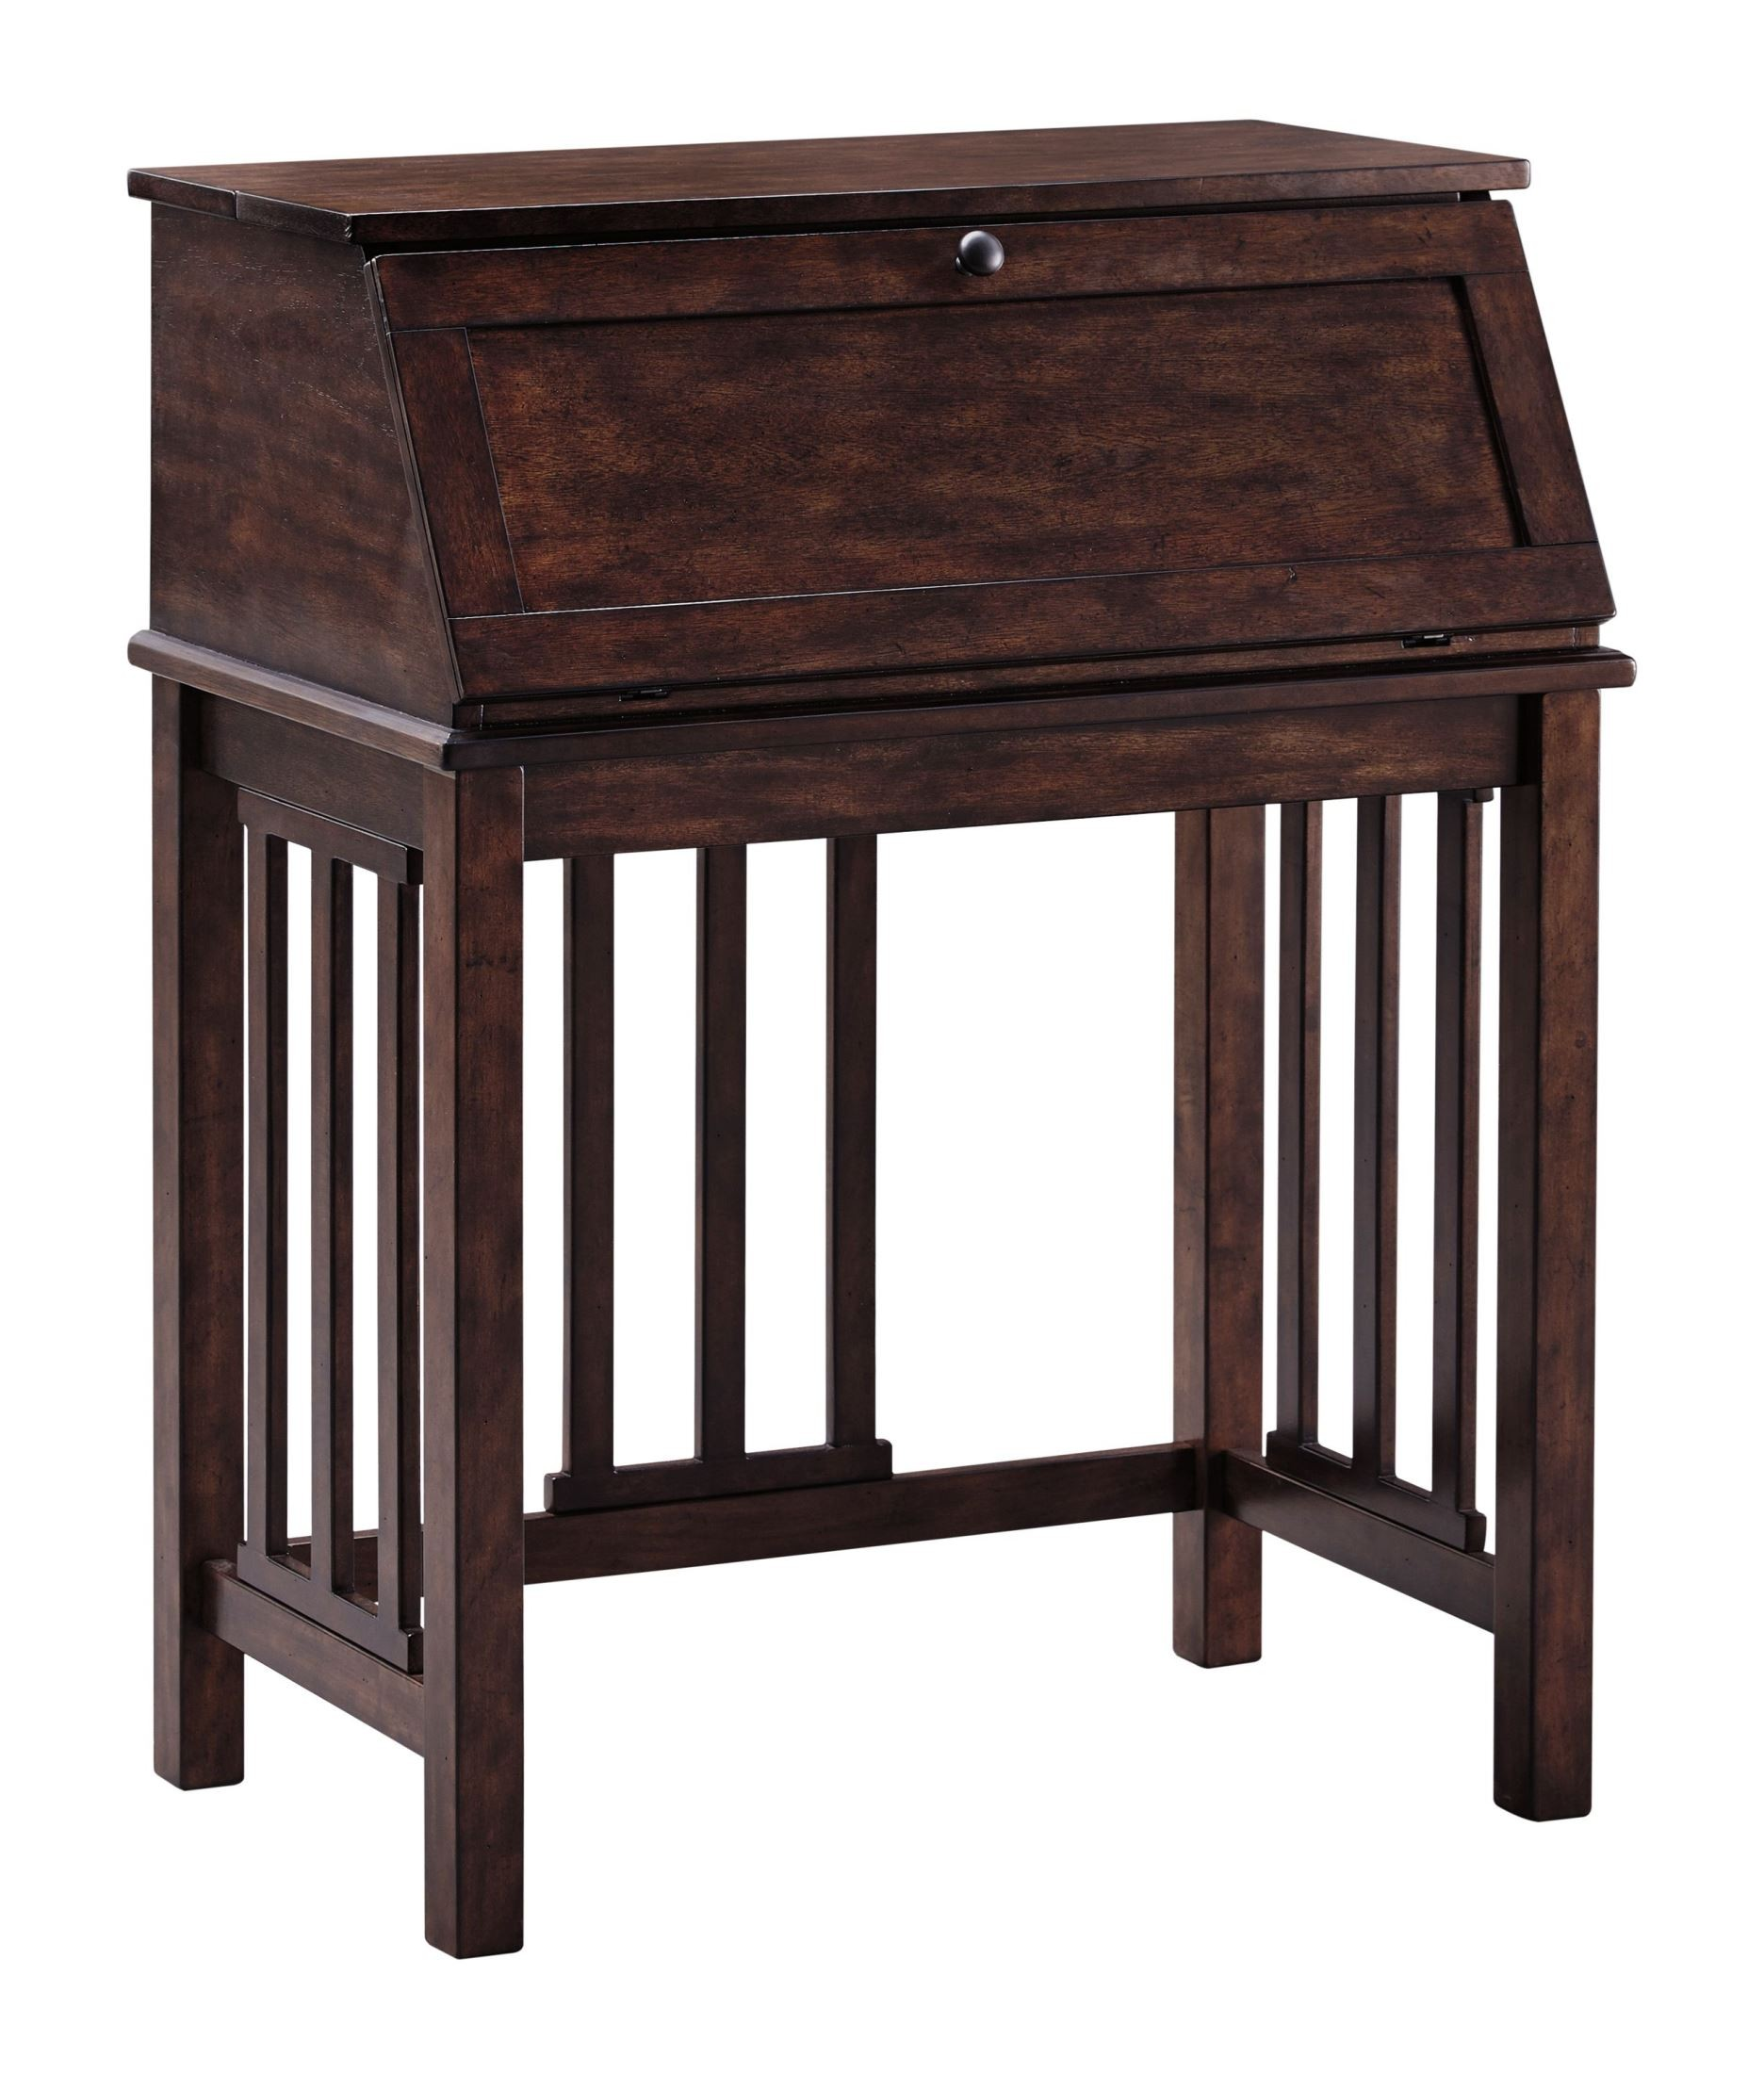 Harpan reddish brown home office drop front desk from